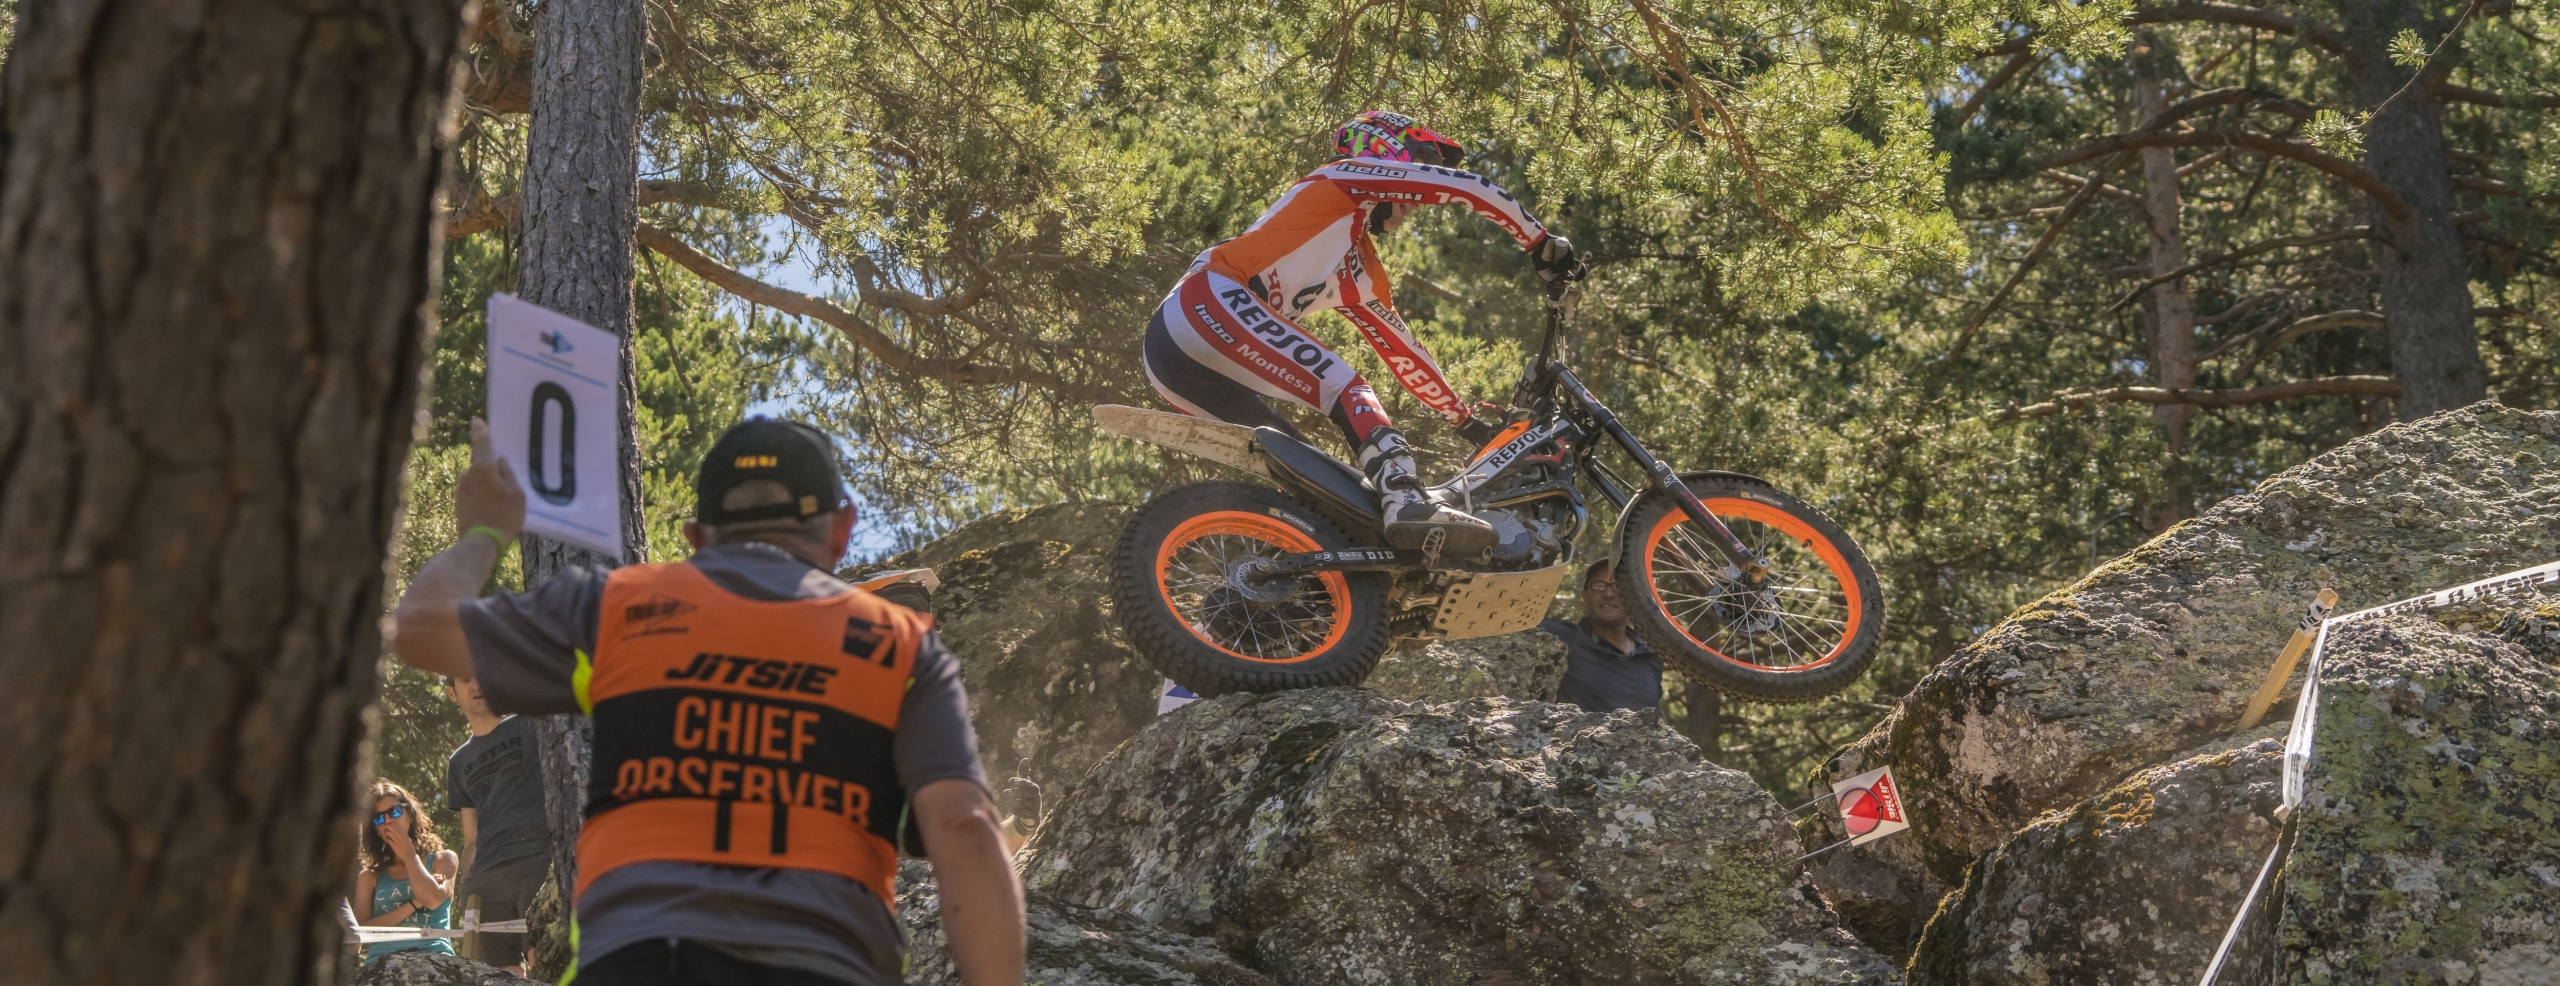 Repsol Honda Team highly-charged for the French TrialGP